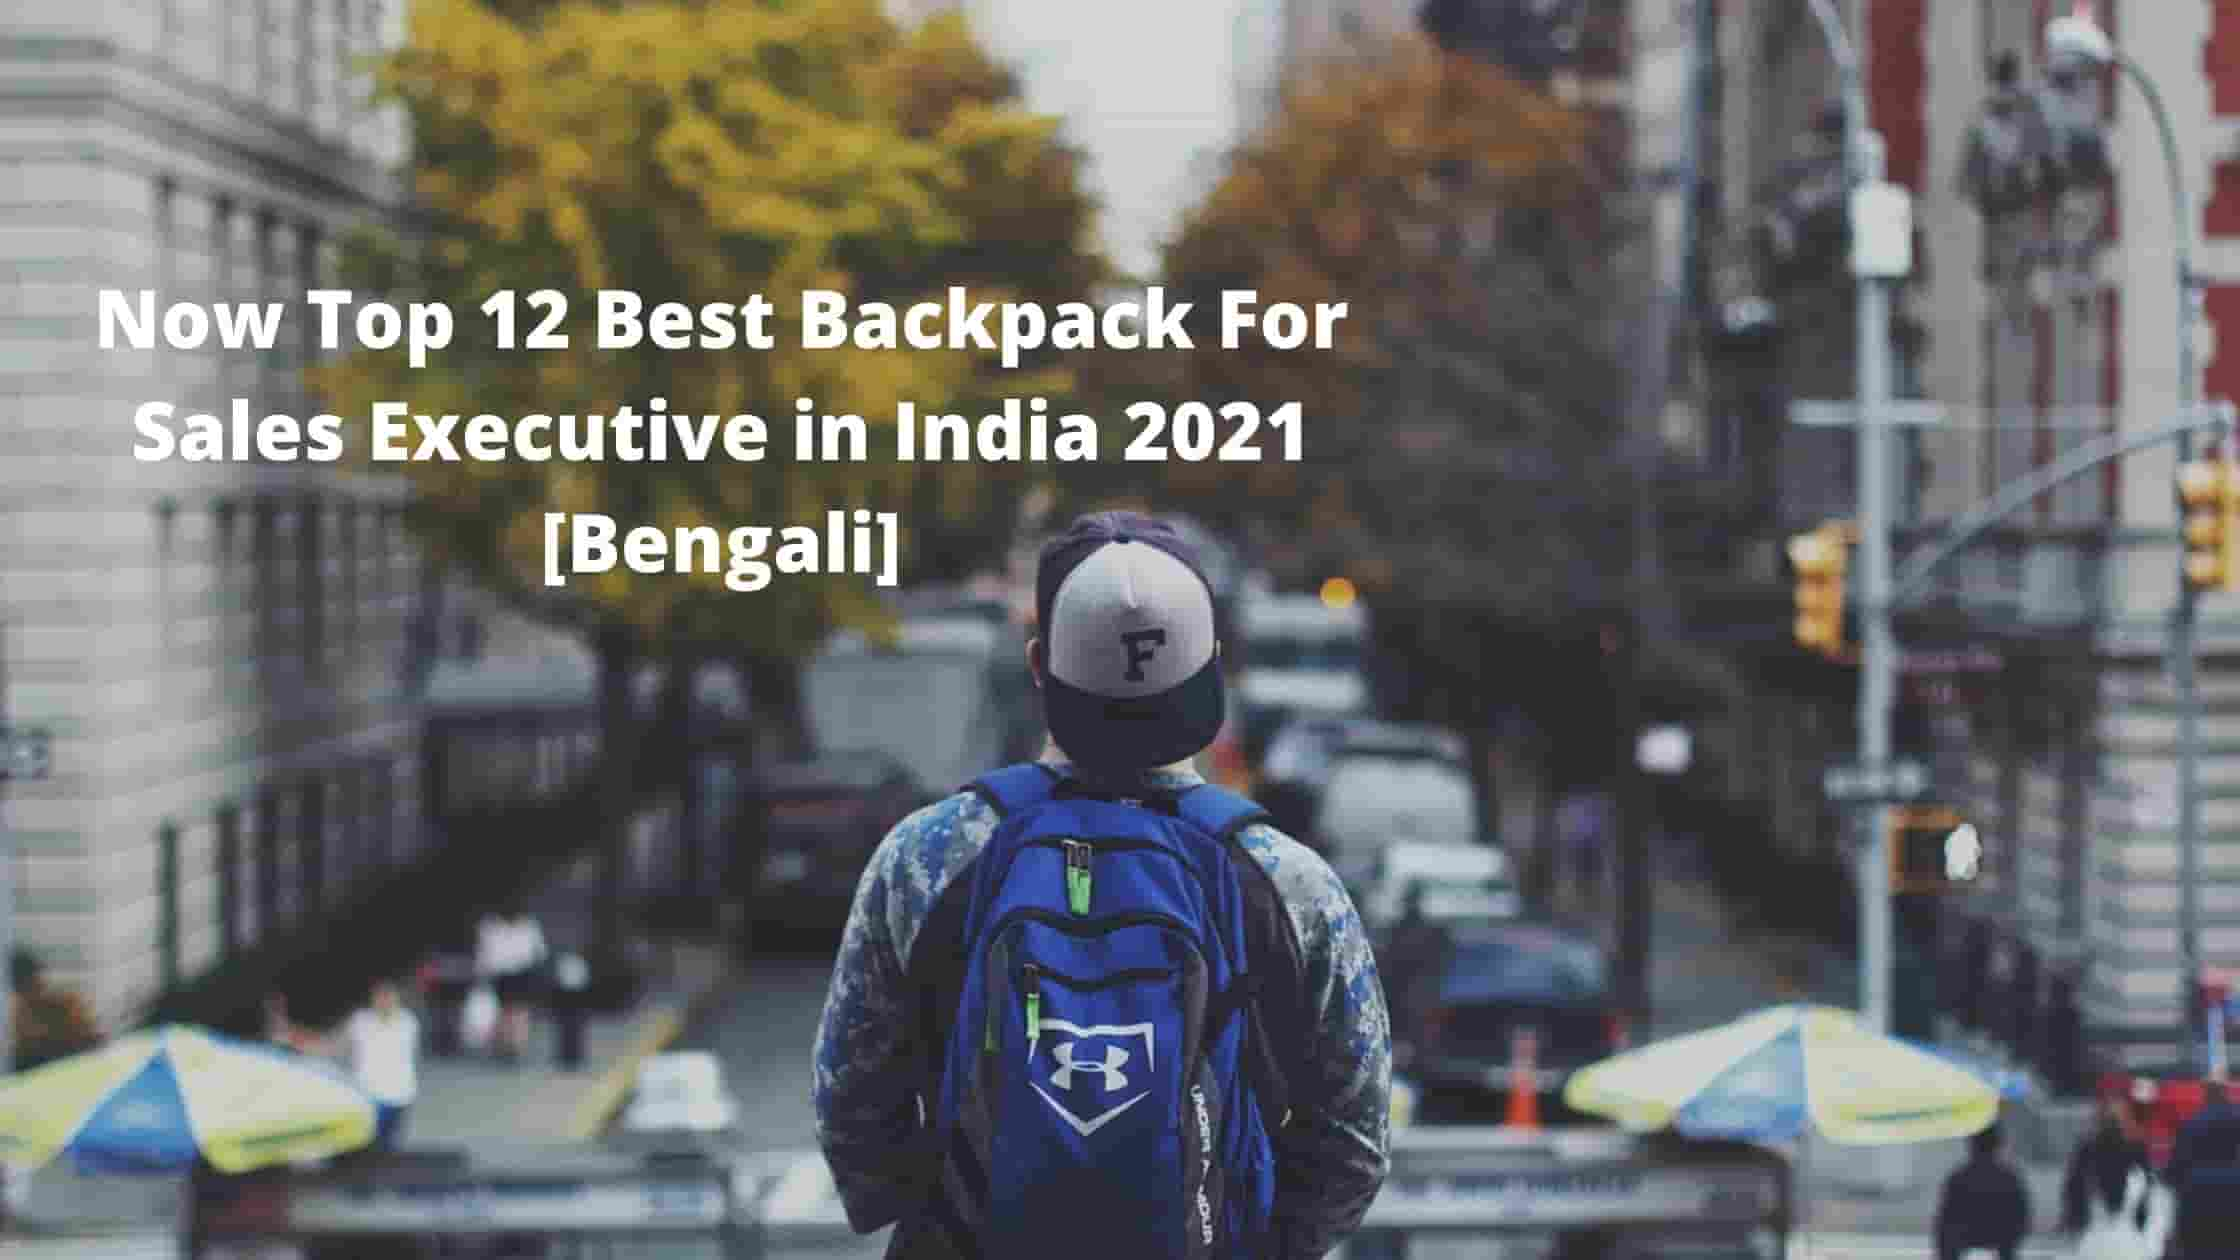 Now Top 12 Best Backpack For Sales Executive in India 2021 [Bengali]